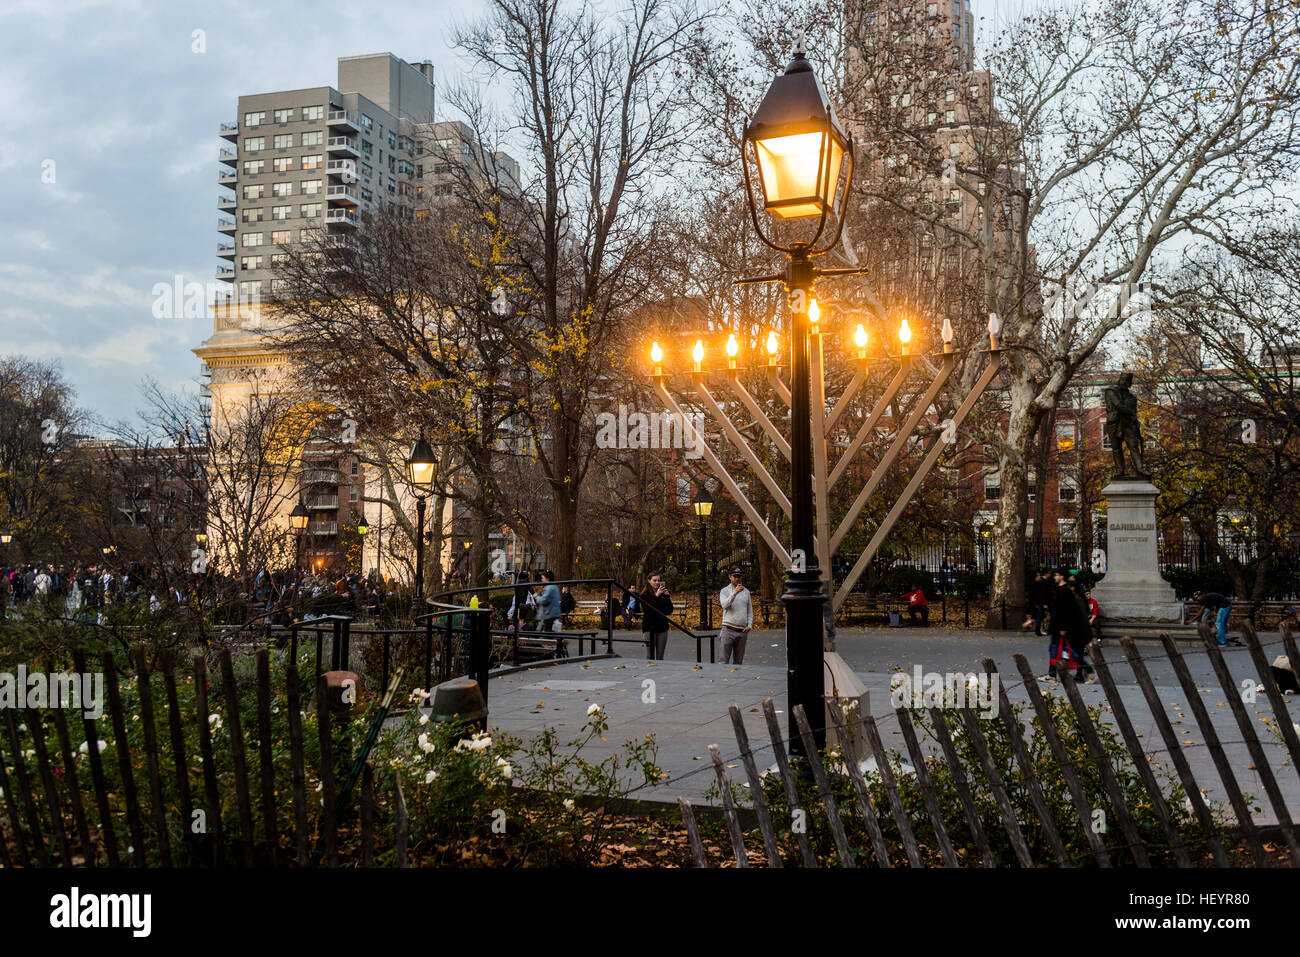 New York, NY 12 December 2015 - Chanukkah menorah in Washington Square Park sponsored by the Lubavitch at Washington - Stock Image